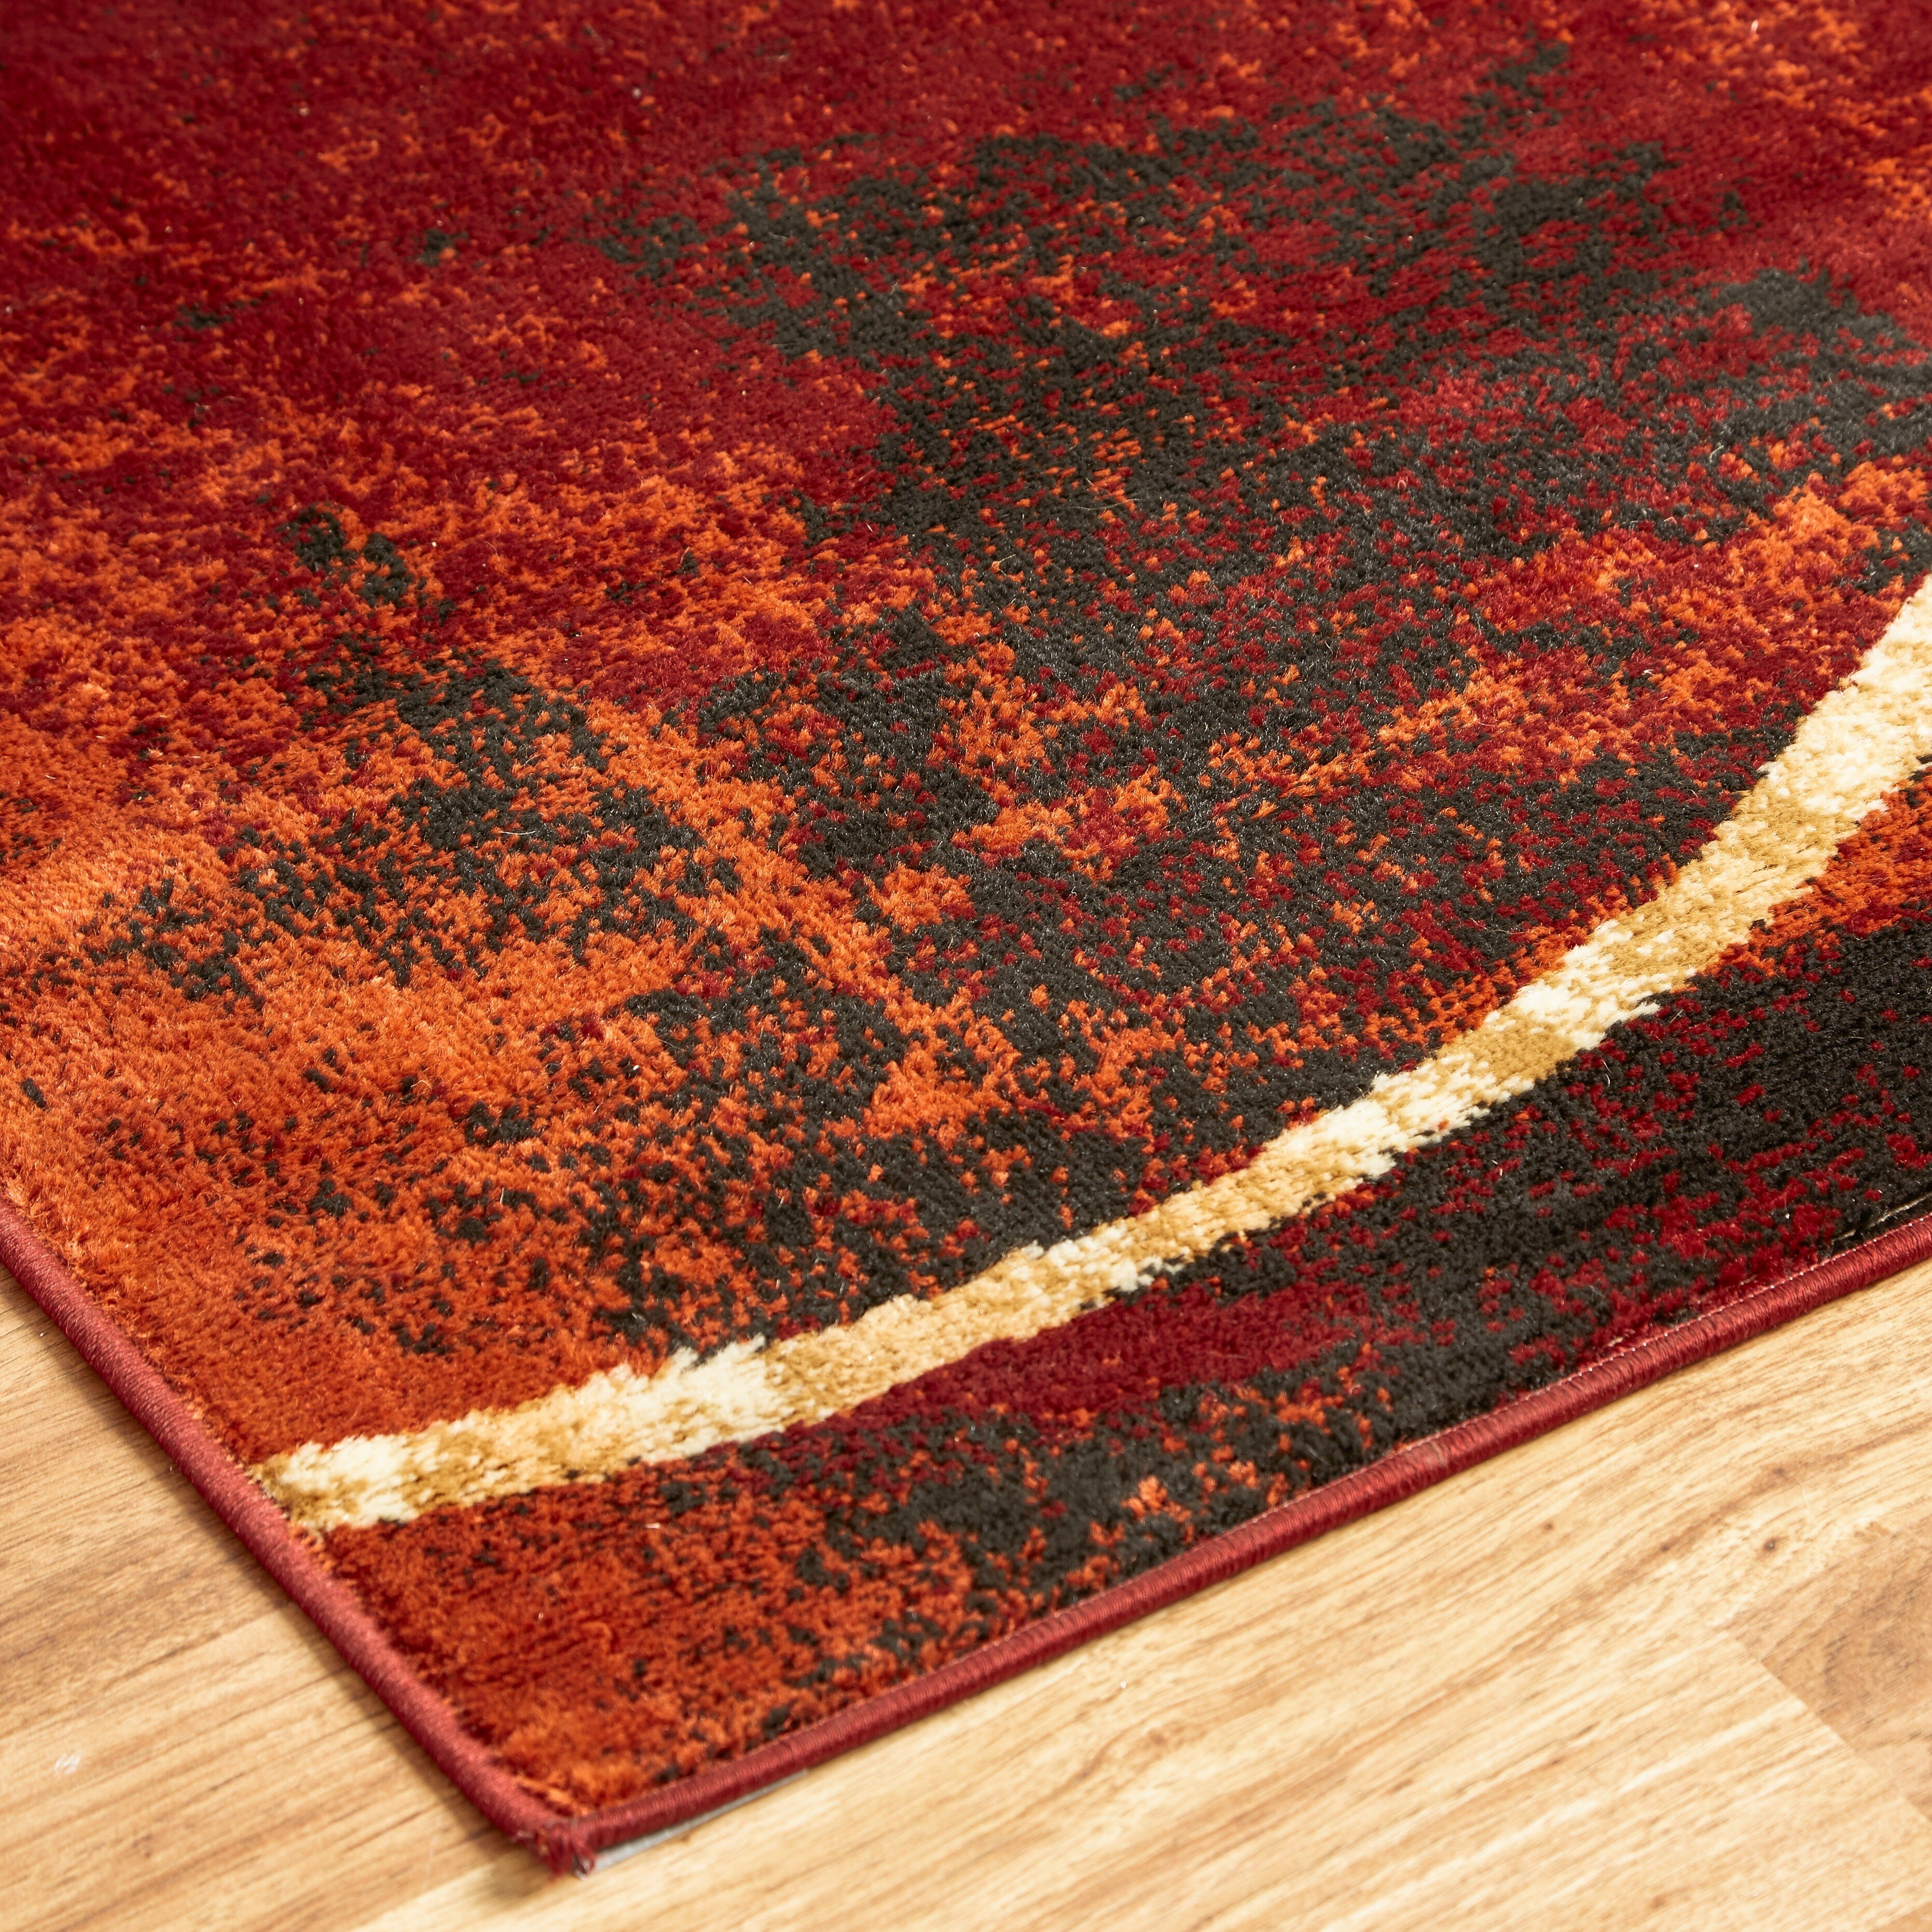 Andover mills eileen red and gold area rug reviews wayfair for Red and gold area rugs